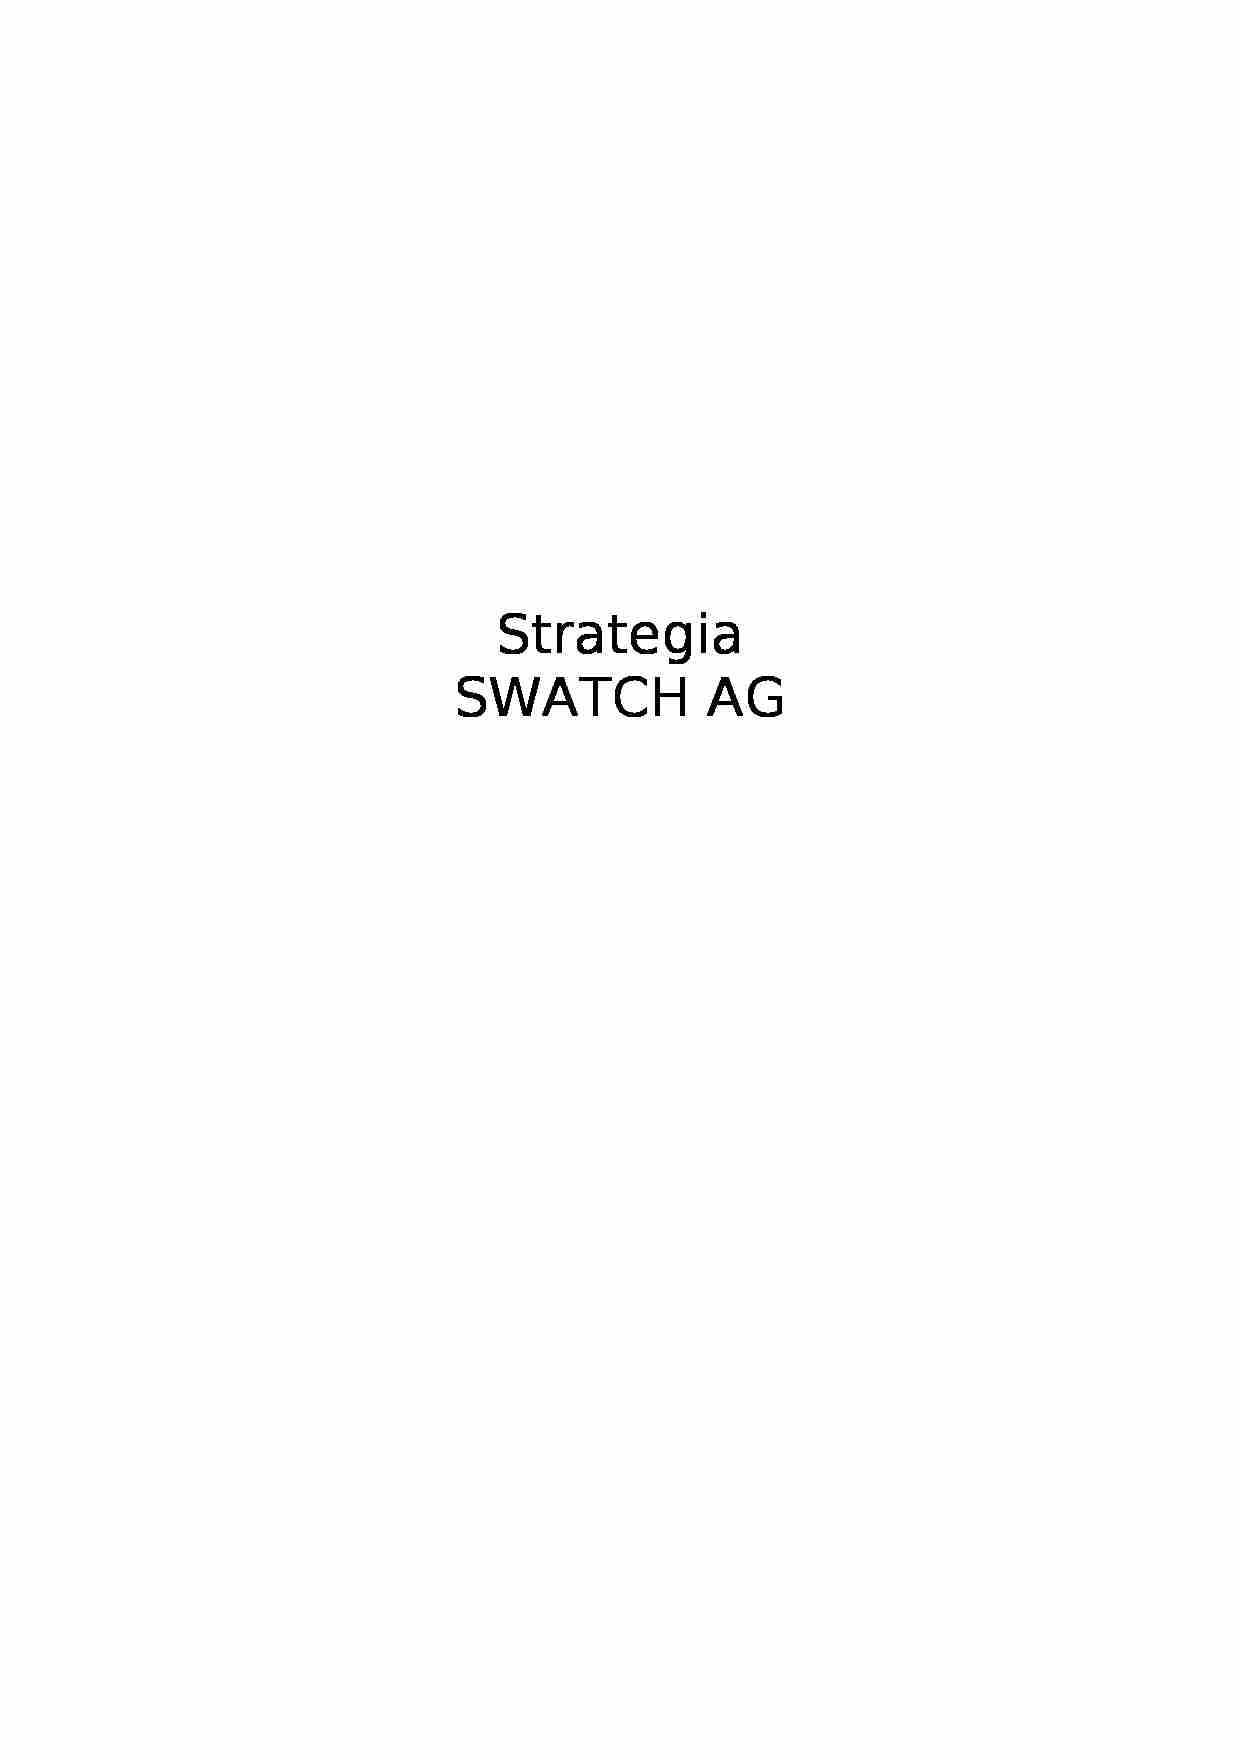 Strategia SWATCH AG - projekt - strona 1